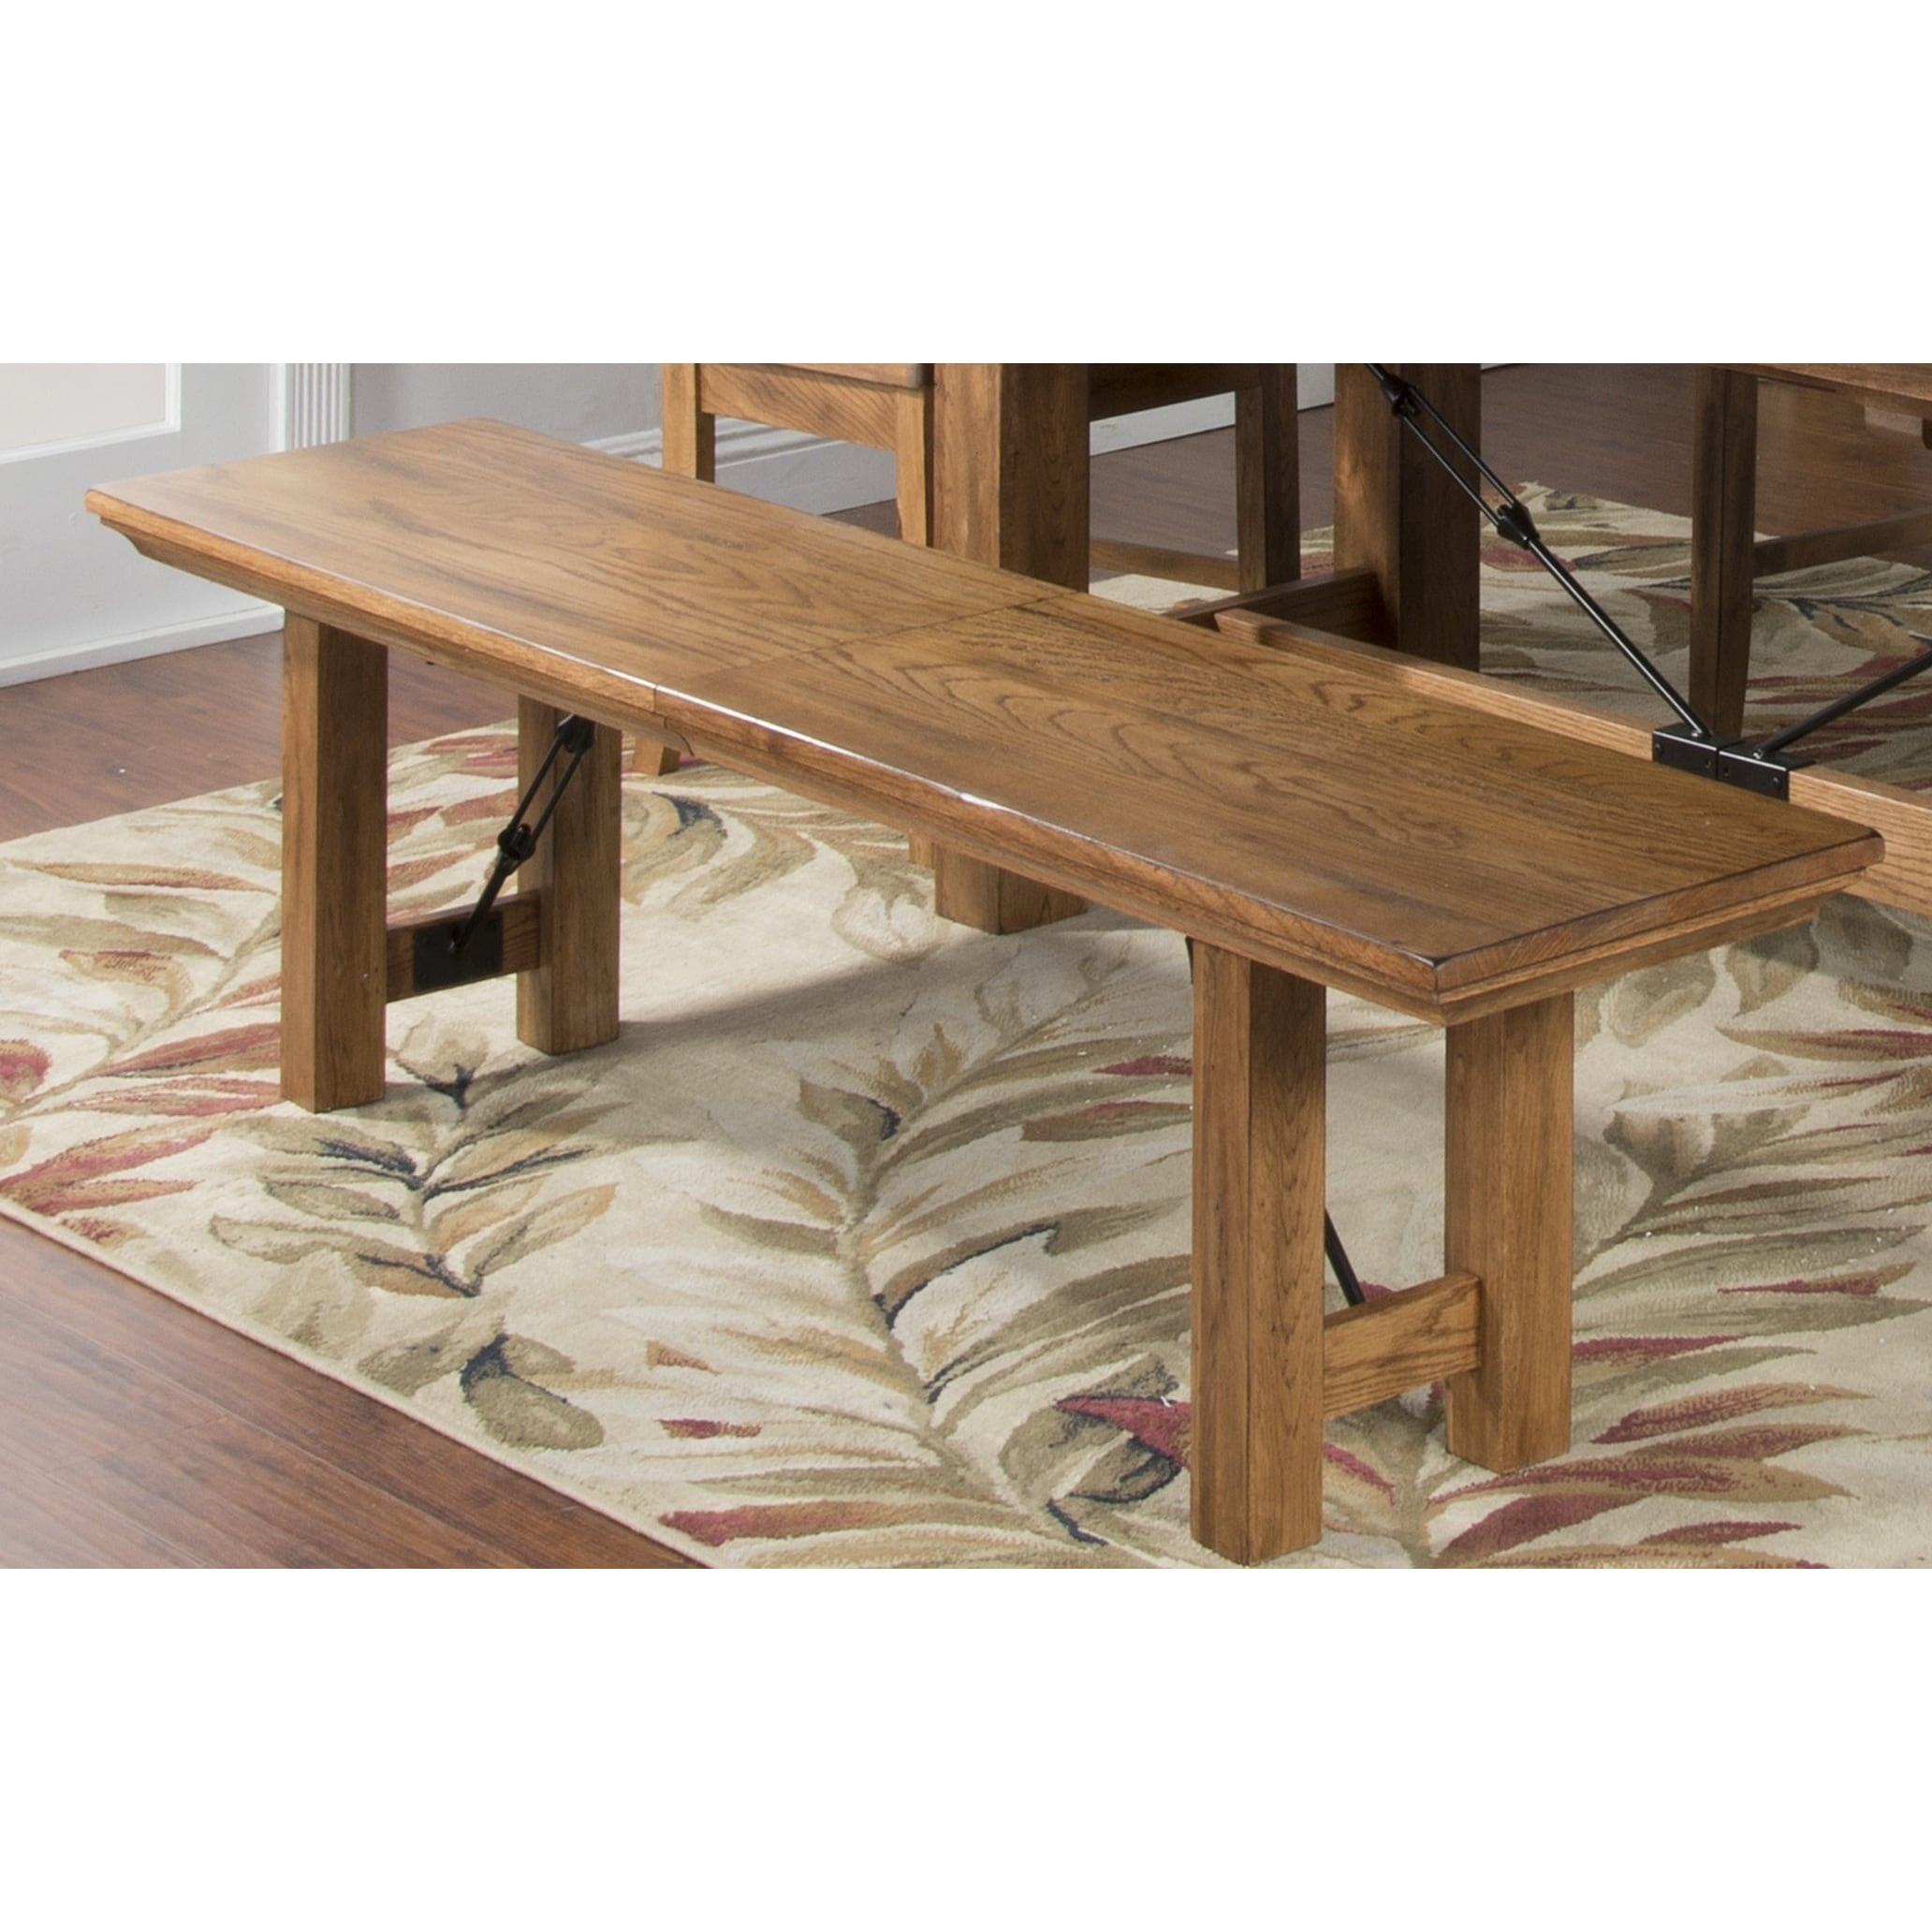 Sunny Designs Sedona Expandable Dining Bench with Wood Se...